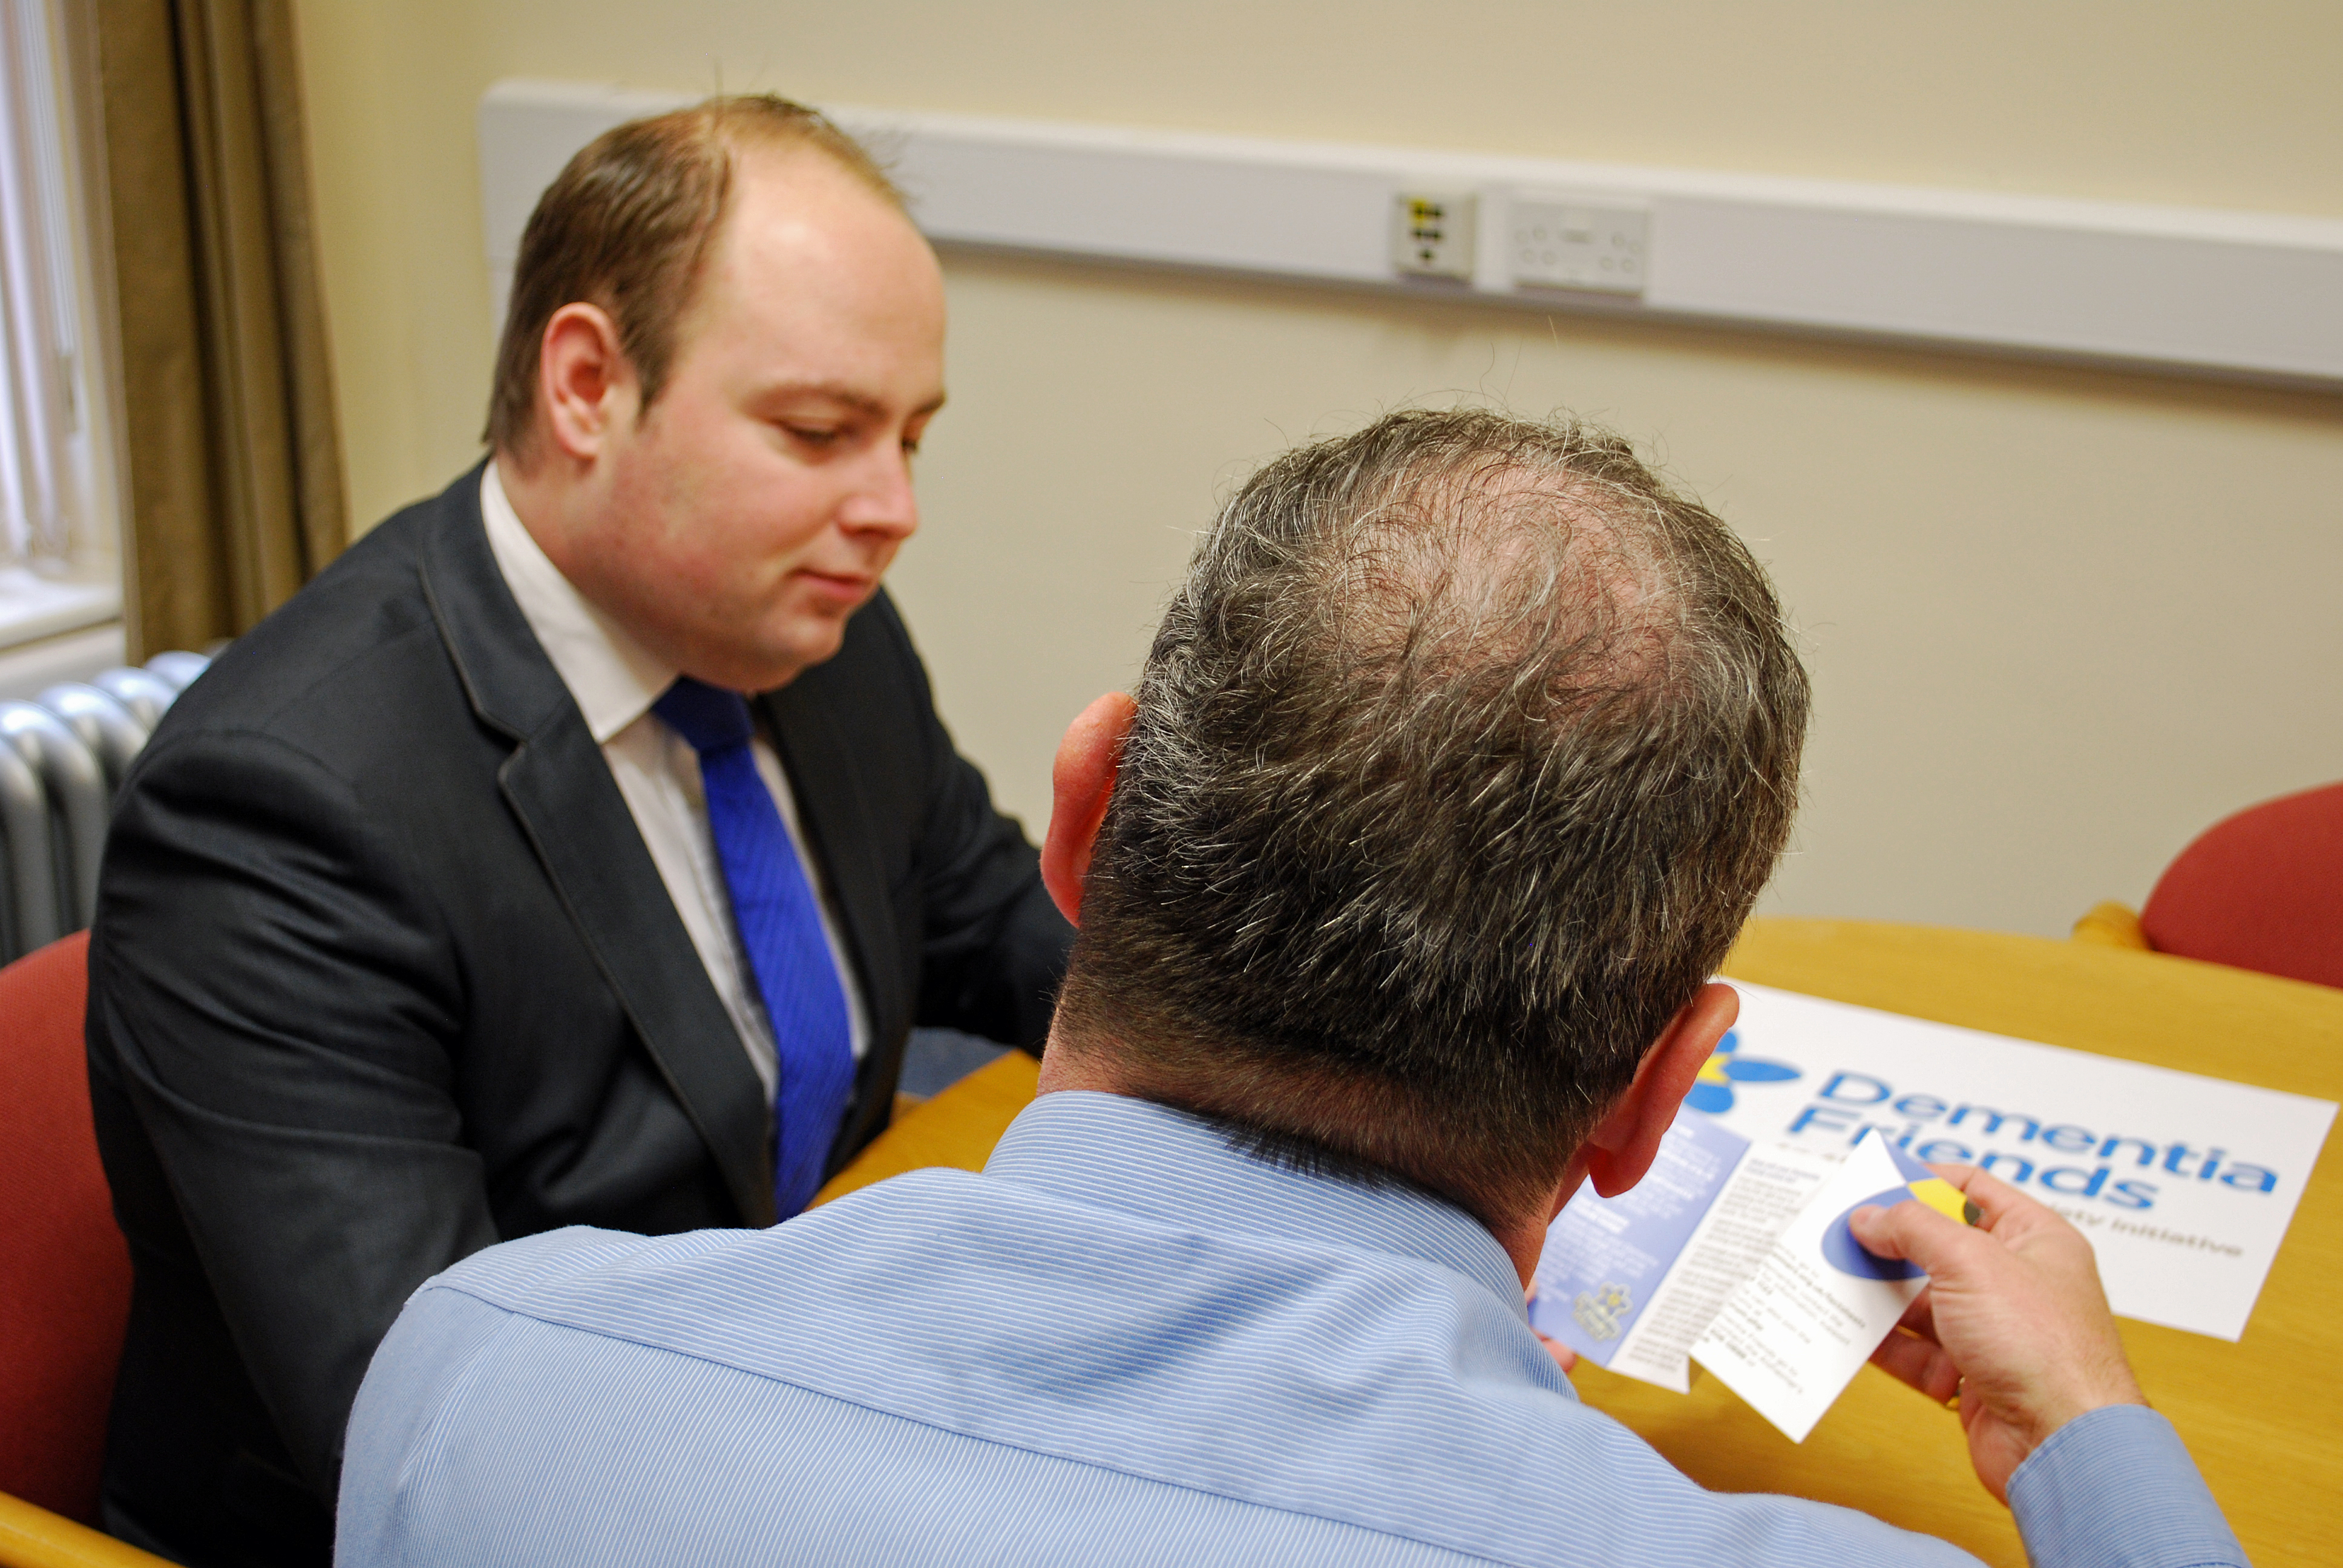 Councillor David Mackintosh in the dementia training session